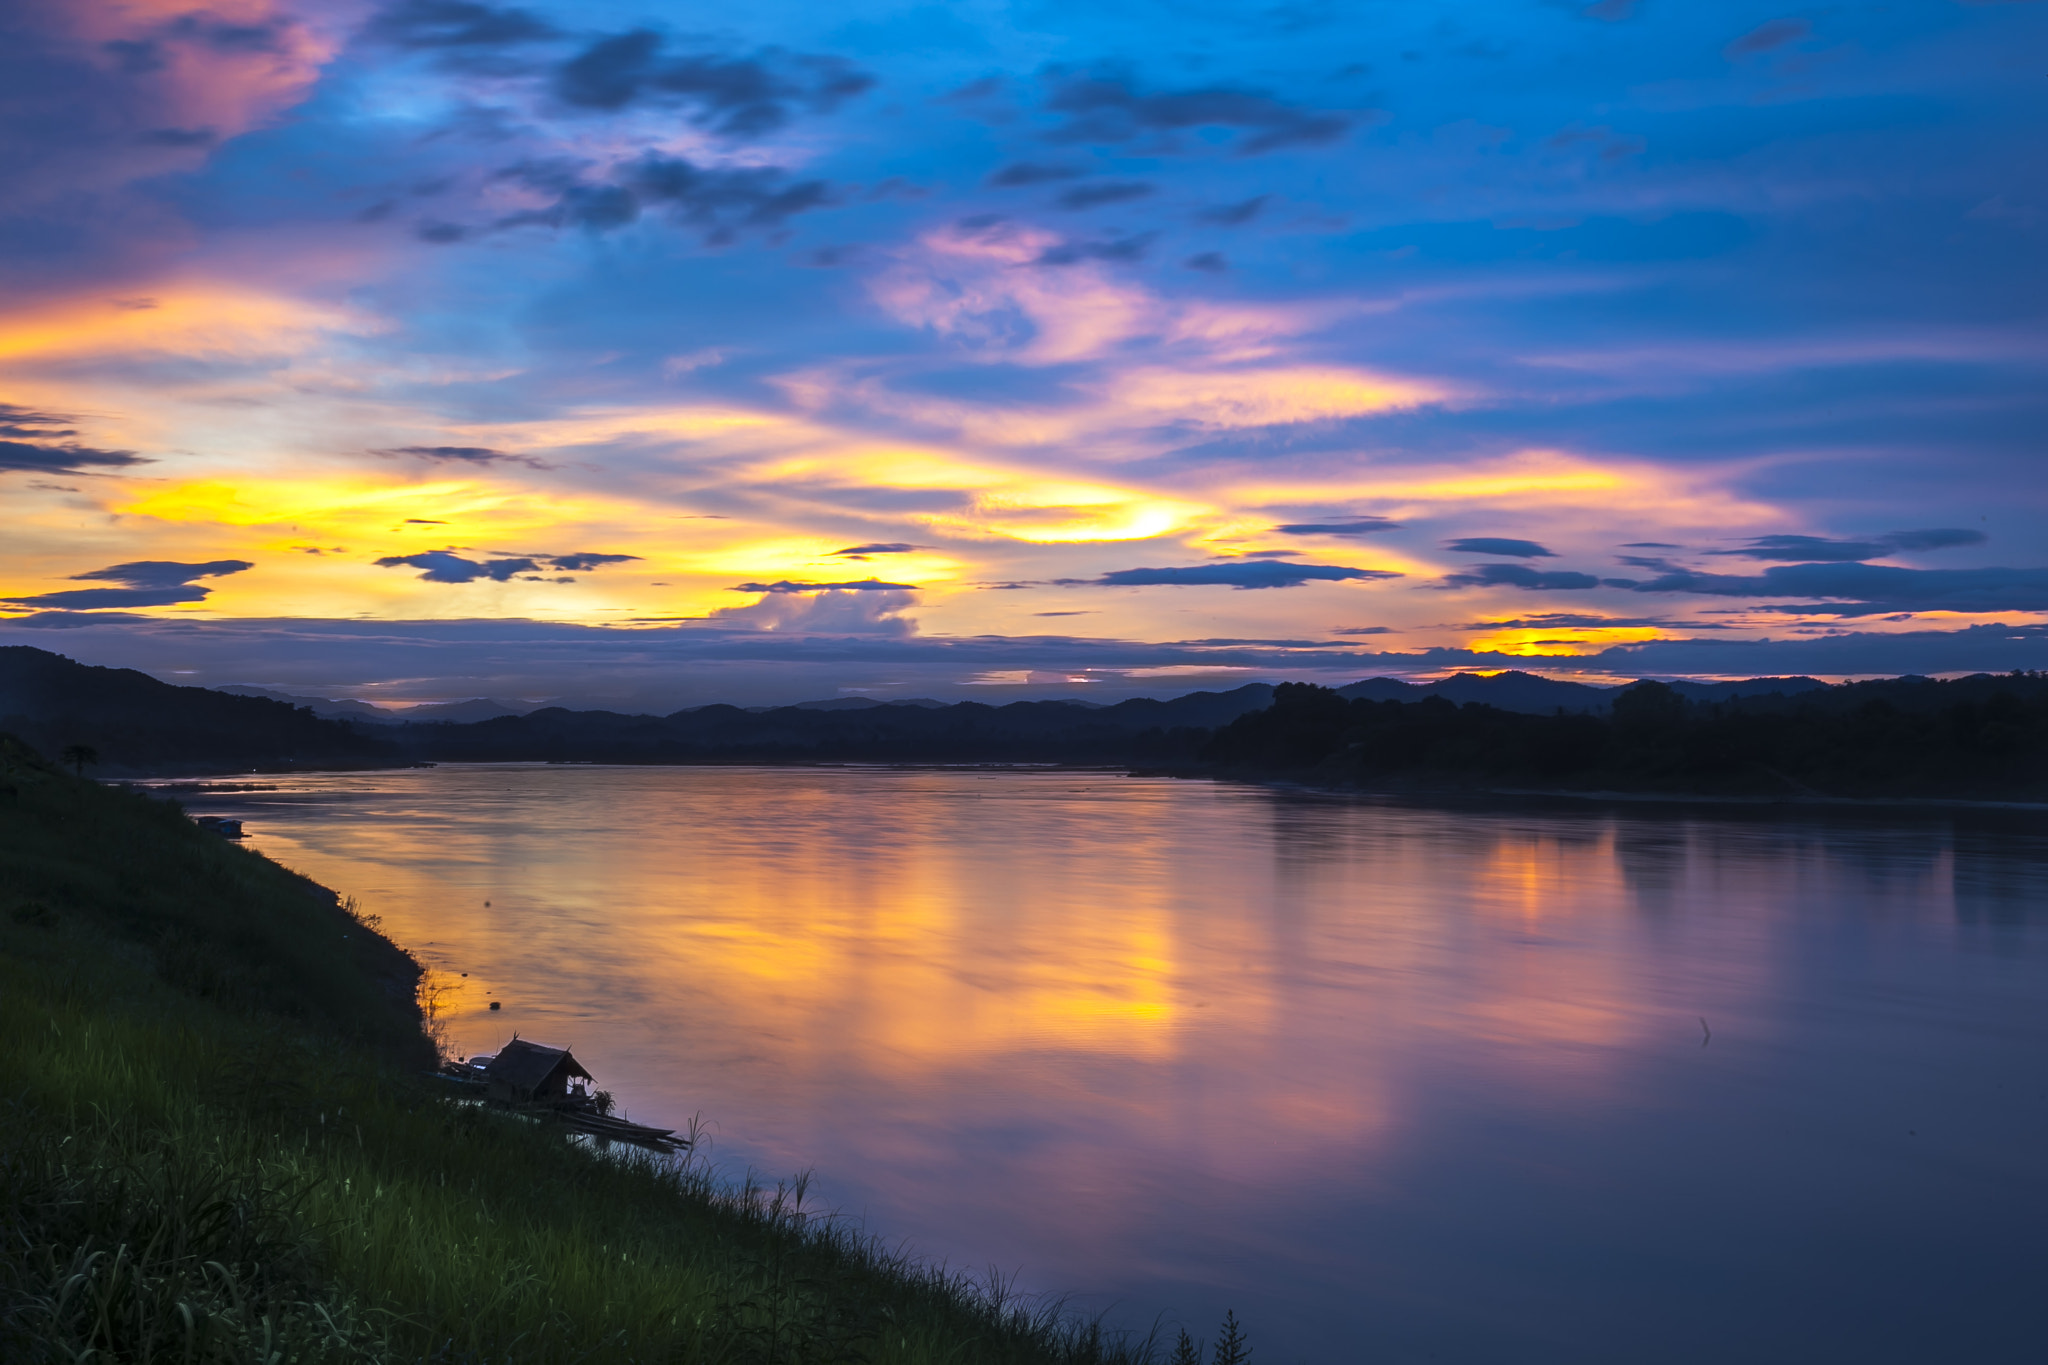 Photograph Chiang Khan Sunset by Asher Lwin on 500px